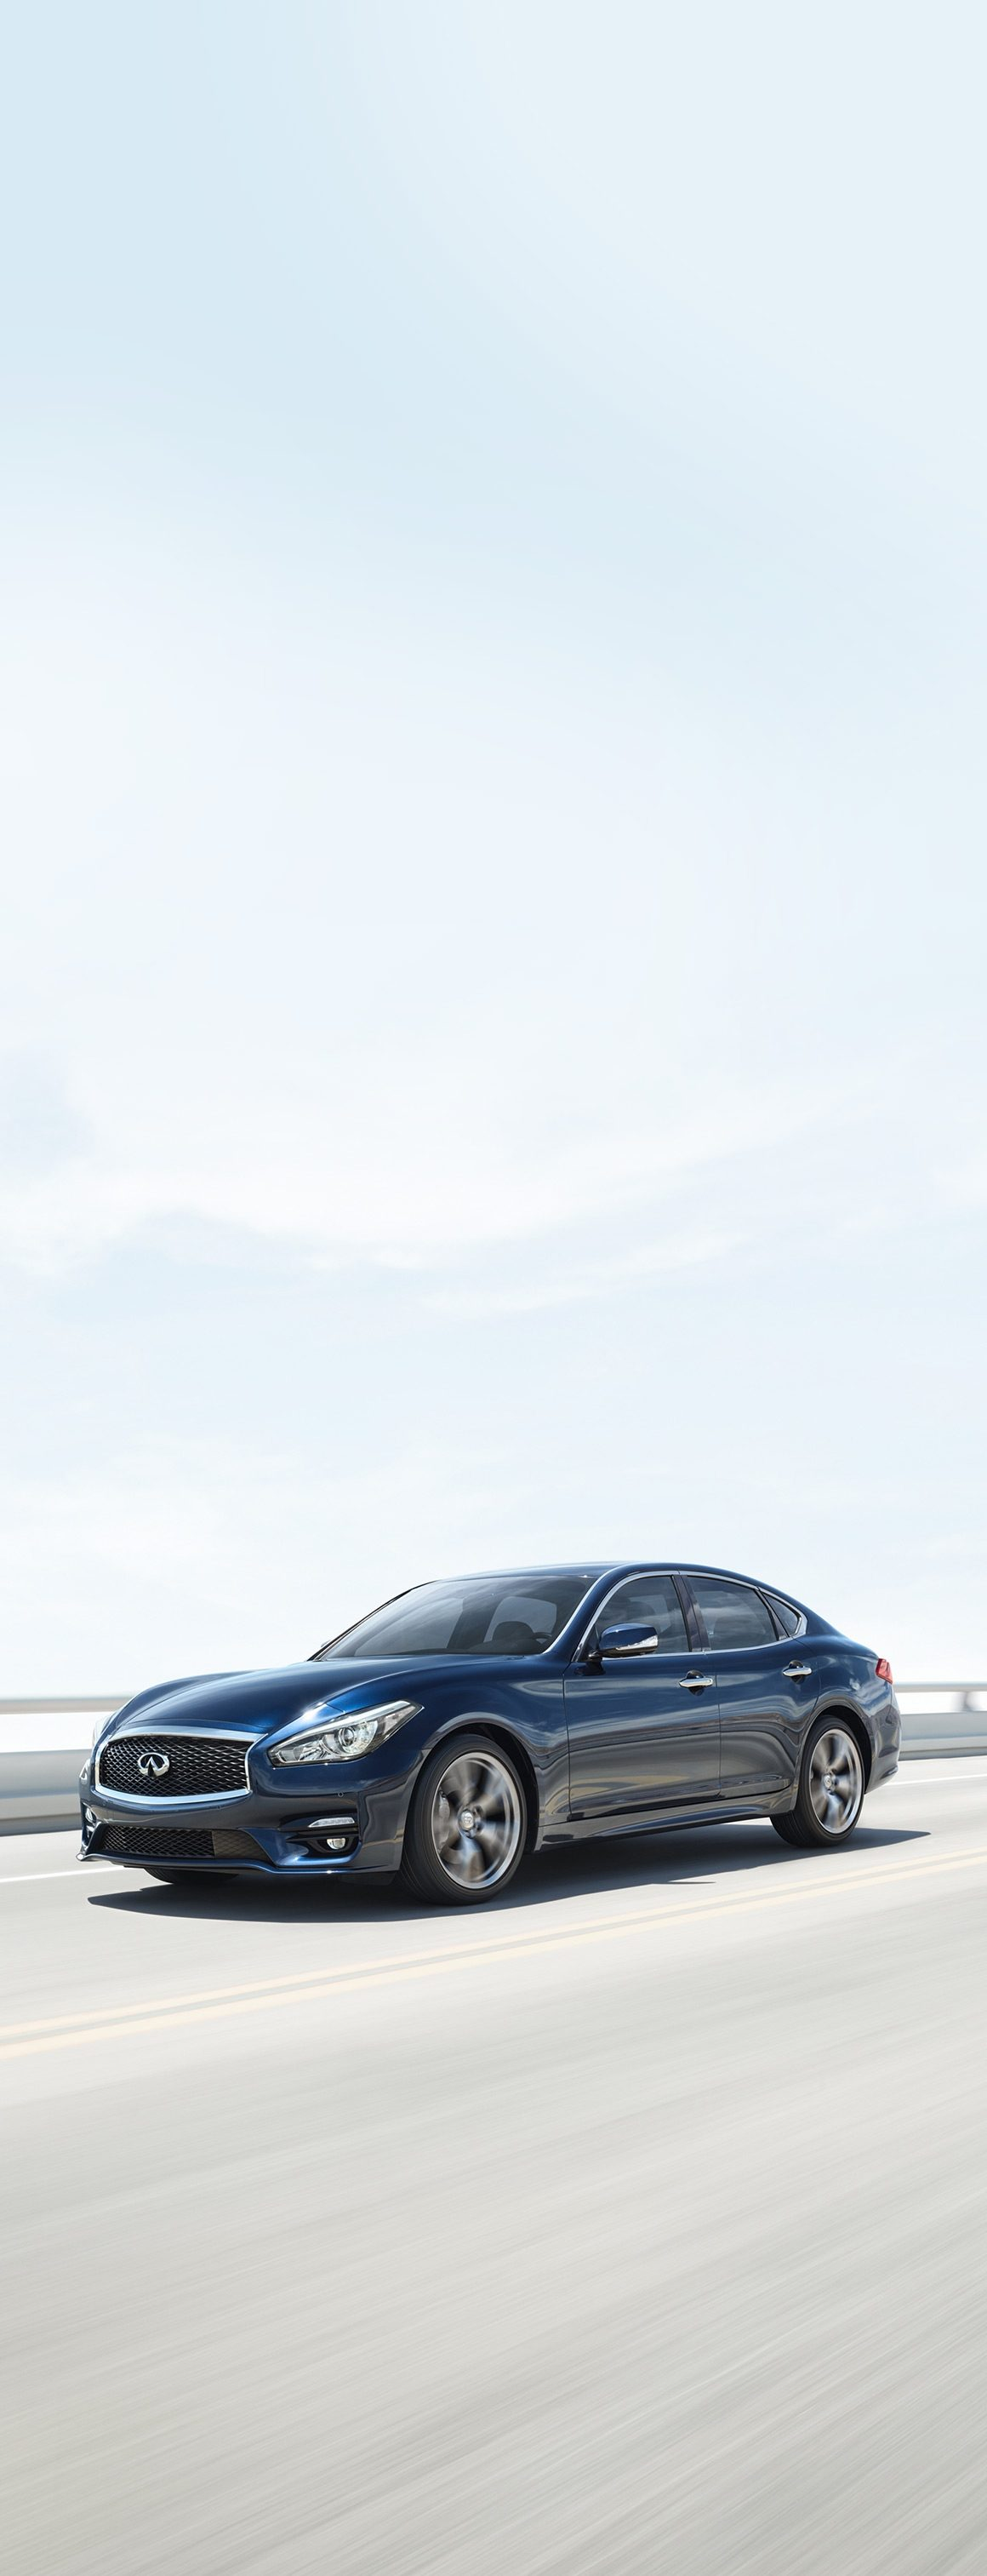 The All-New Infiniti Q60